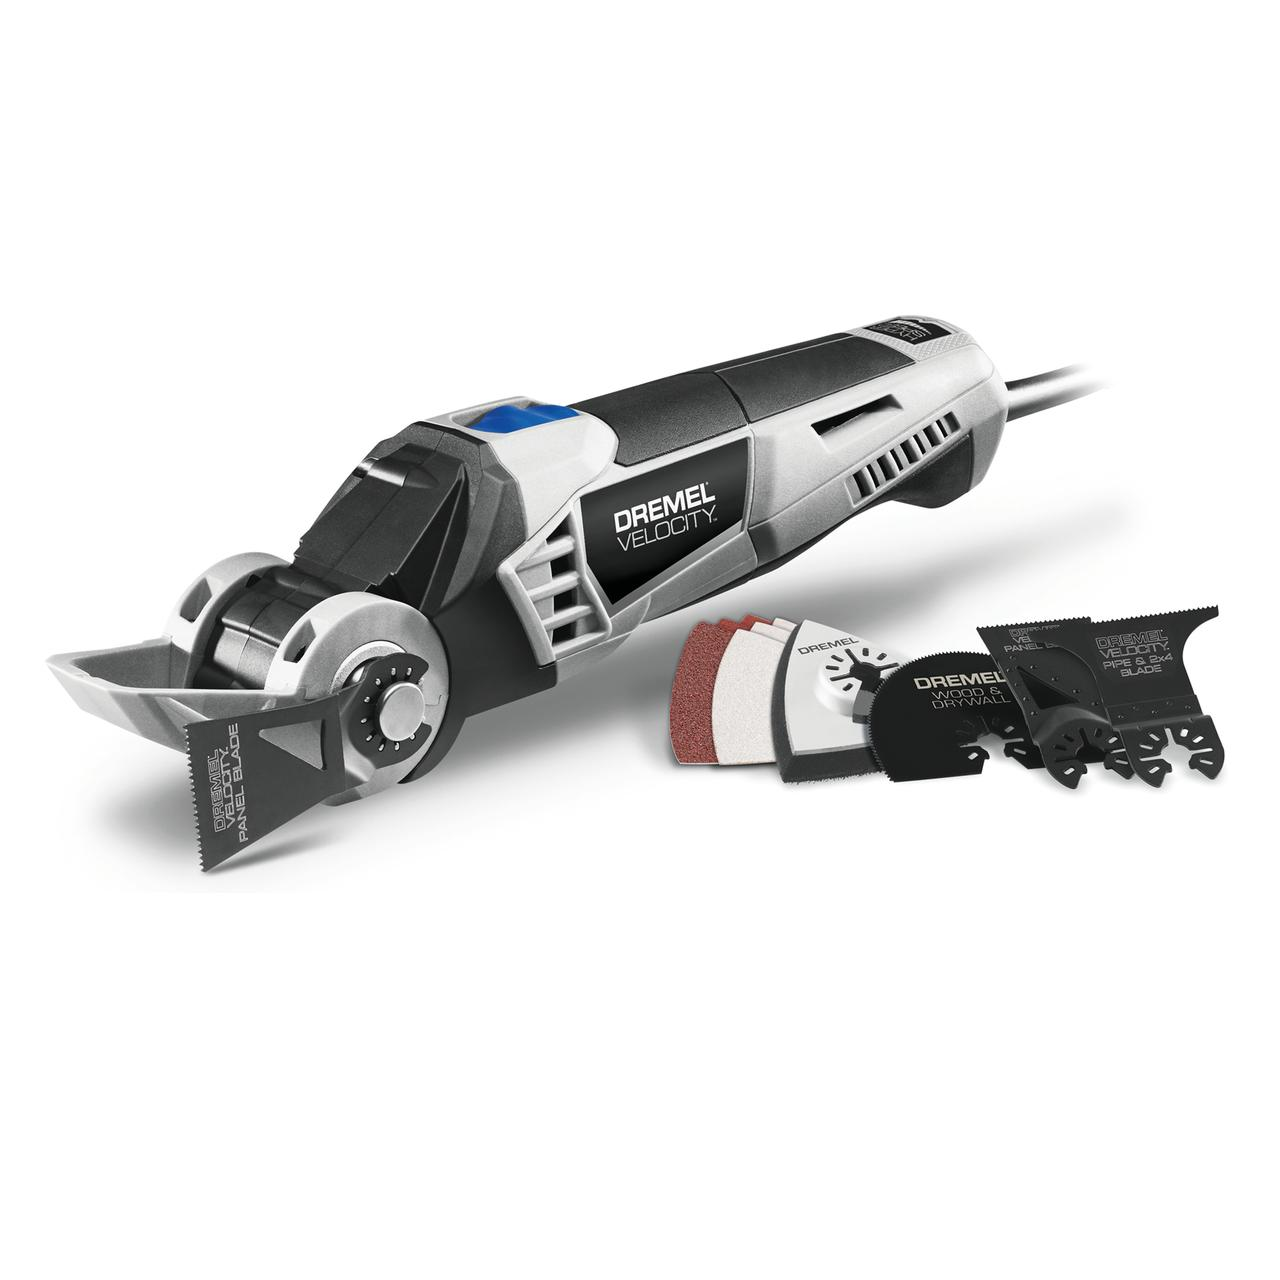 Dremel Vc60-01 Velocity 7.0 Amp Corded 2-Position Oscillating Tool Kit, 10 Accessories